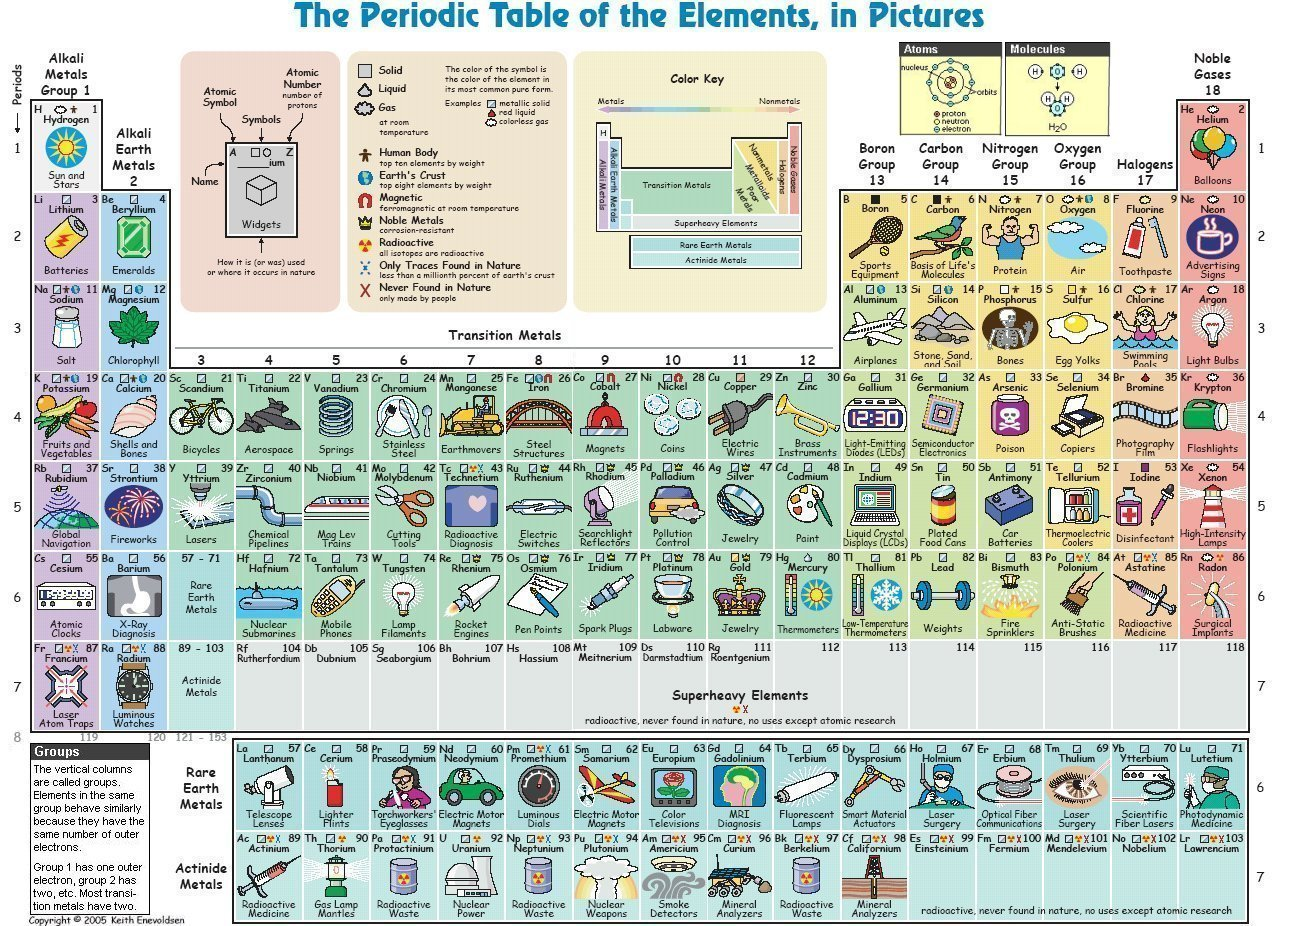 THE PERIODIC TABLE IN PICTURES